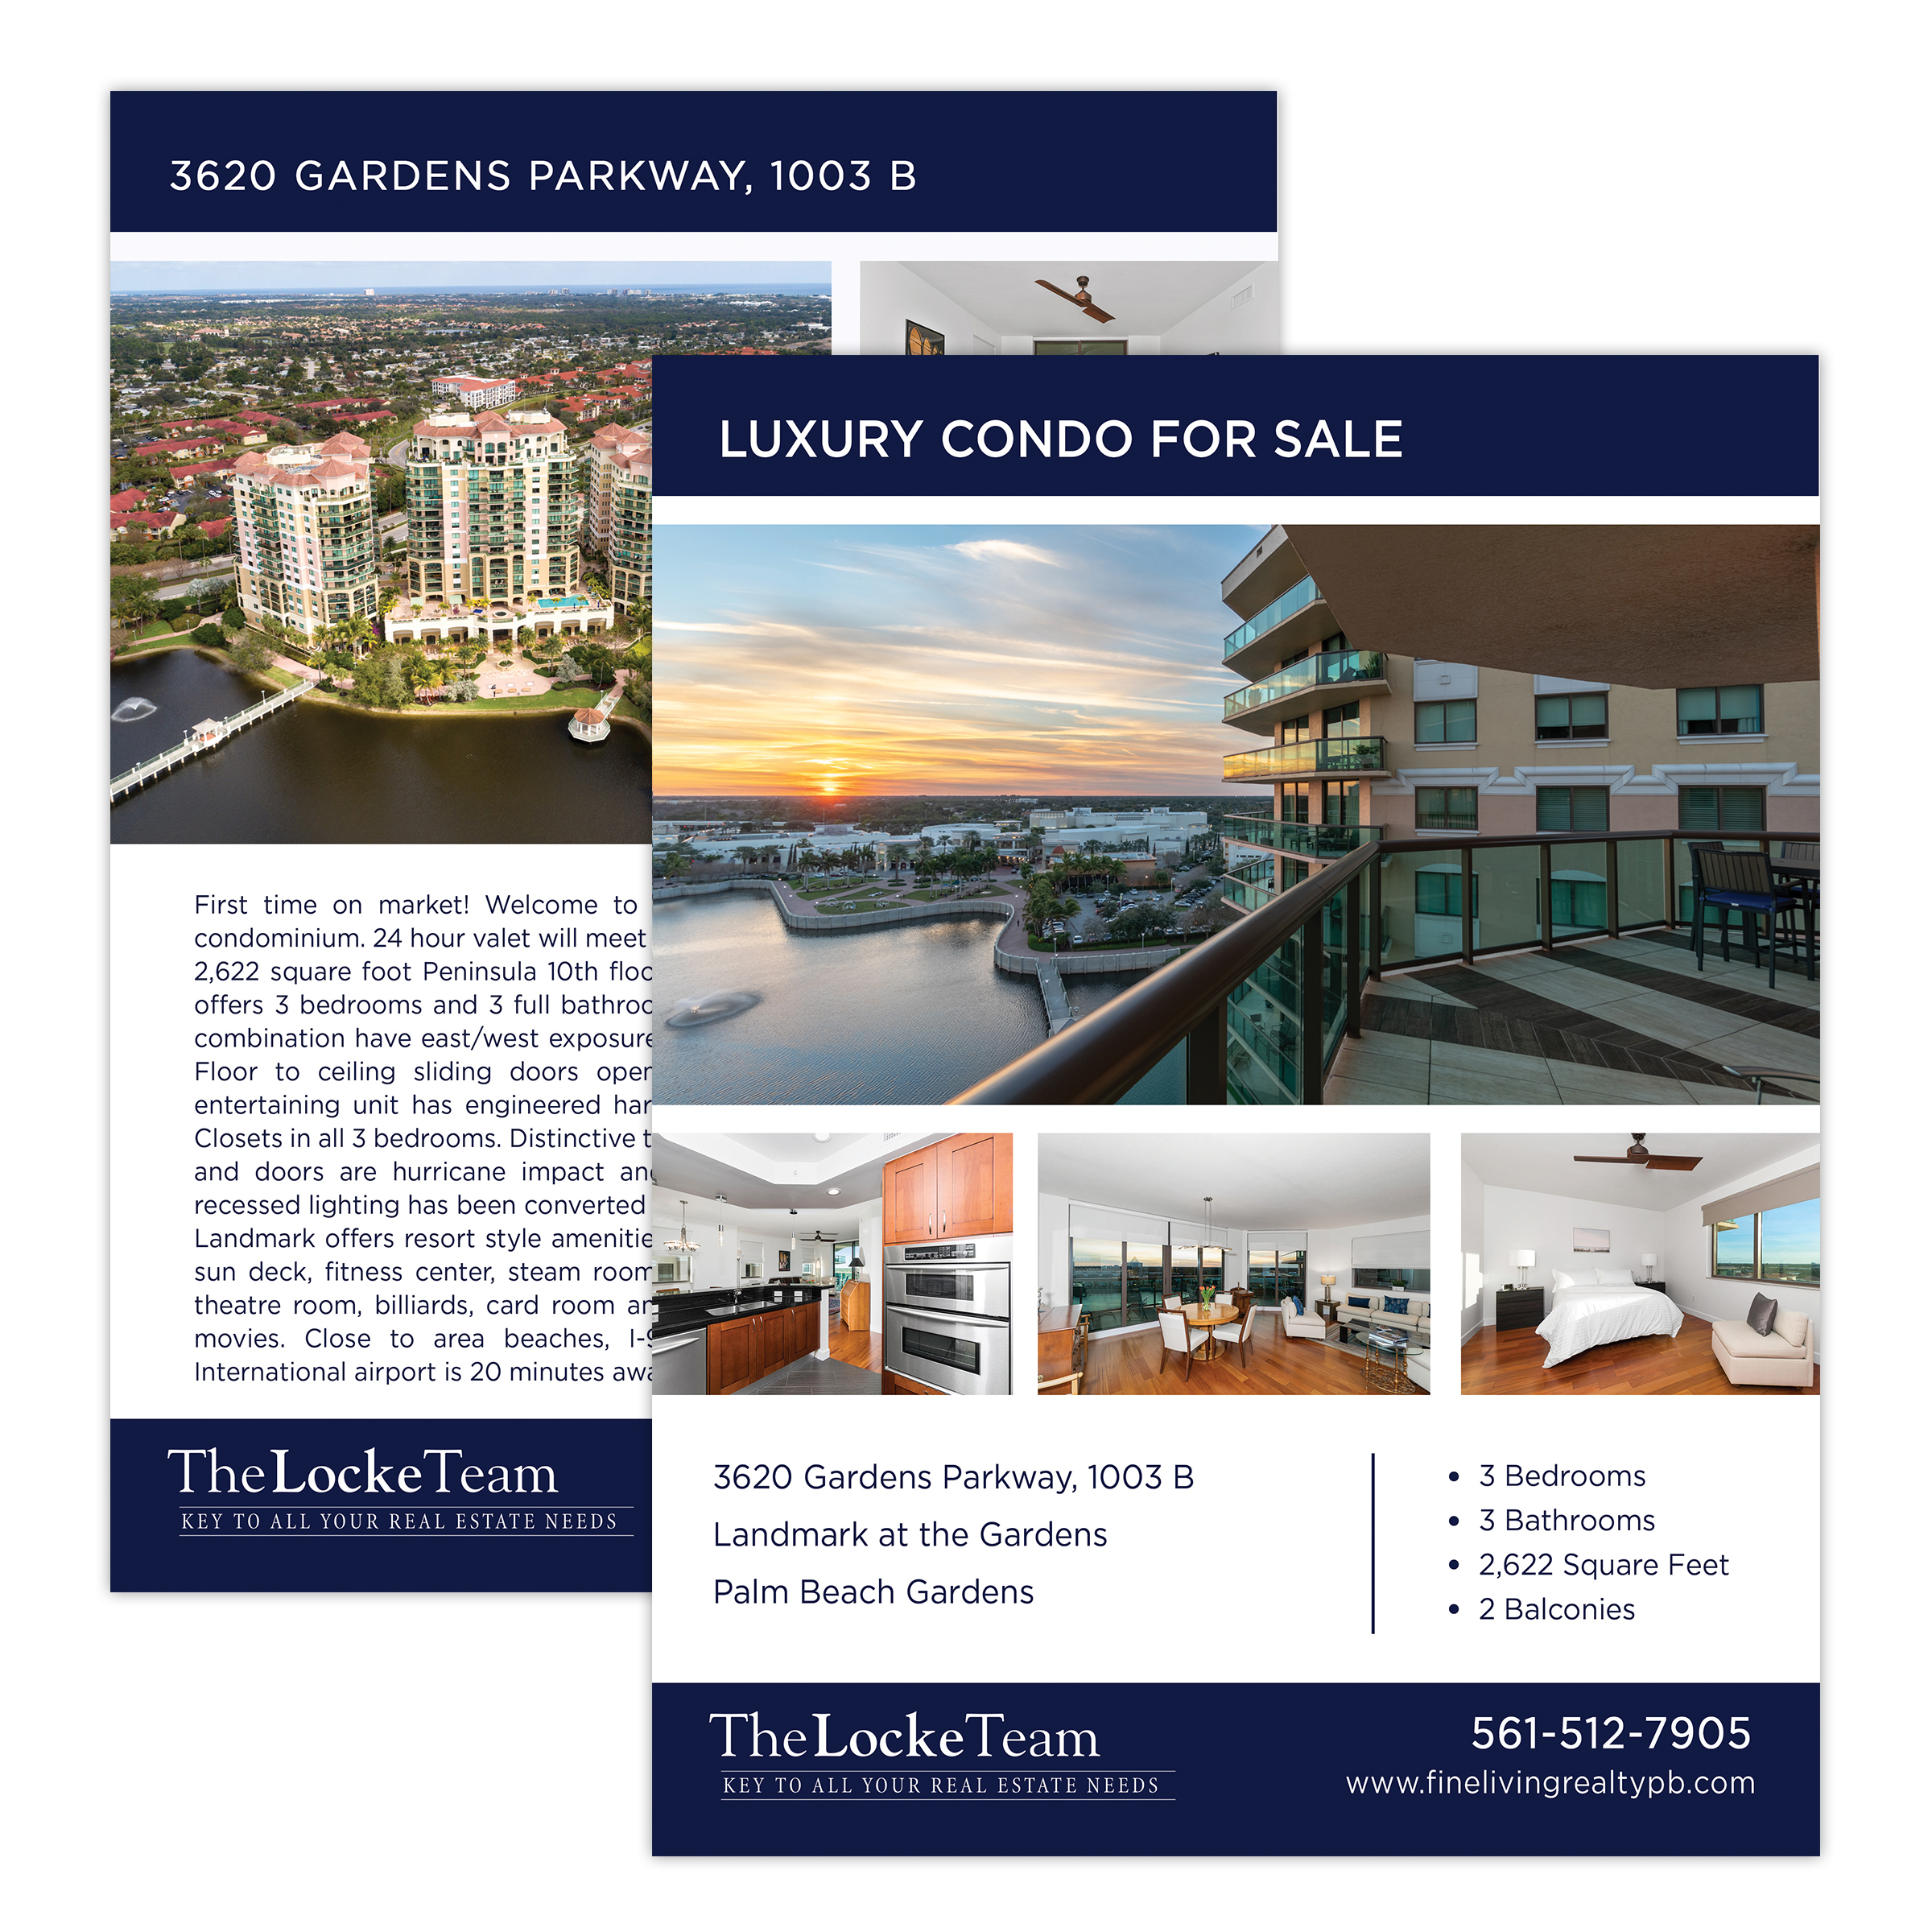 Real Estate Property Double Sided Flyer Design